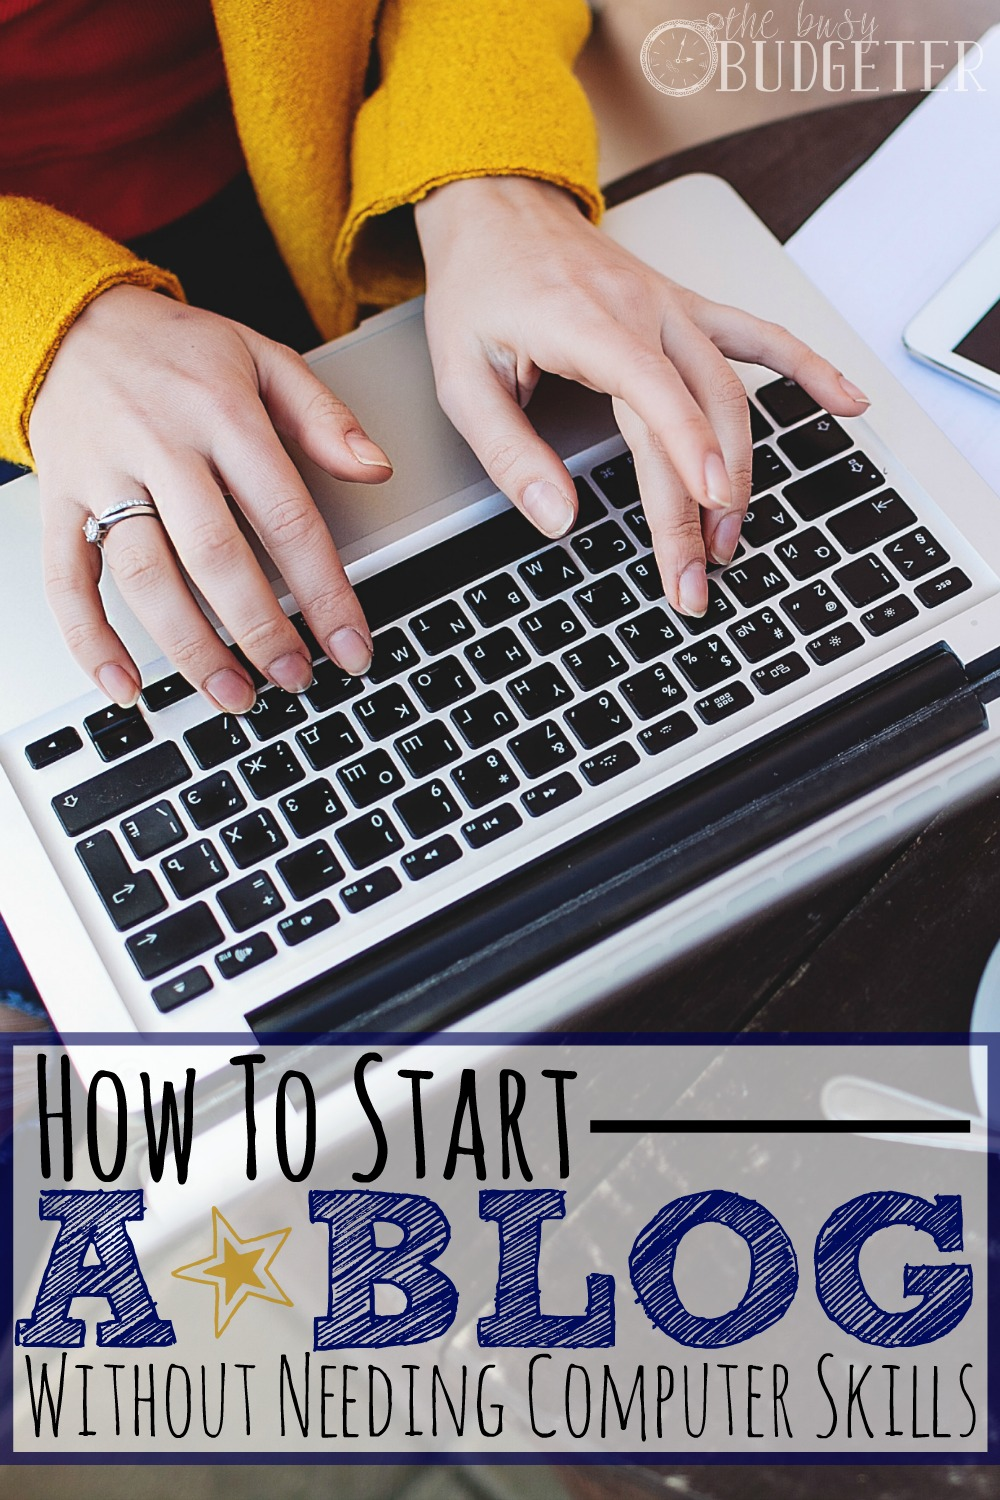 The Easiest Way To Start a Blog - No Fancy Computer Skills Needed! I've read countless tutorials on this and they're always so vague. This is the first one that I could completely understand each step. I'm not terrible at computers but I also wouldn't say I'm amazing and this was effortless for me to tackle. (After having tried and failed to start a blog several other times). The best part is that it goes beyond just how to create a website and talks about how to make money from your blog too. Great links to income reports too!